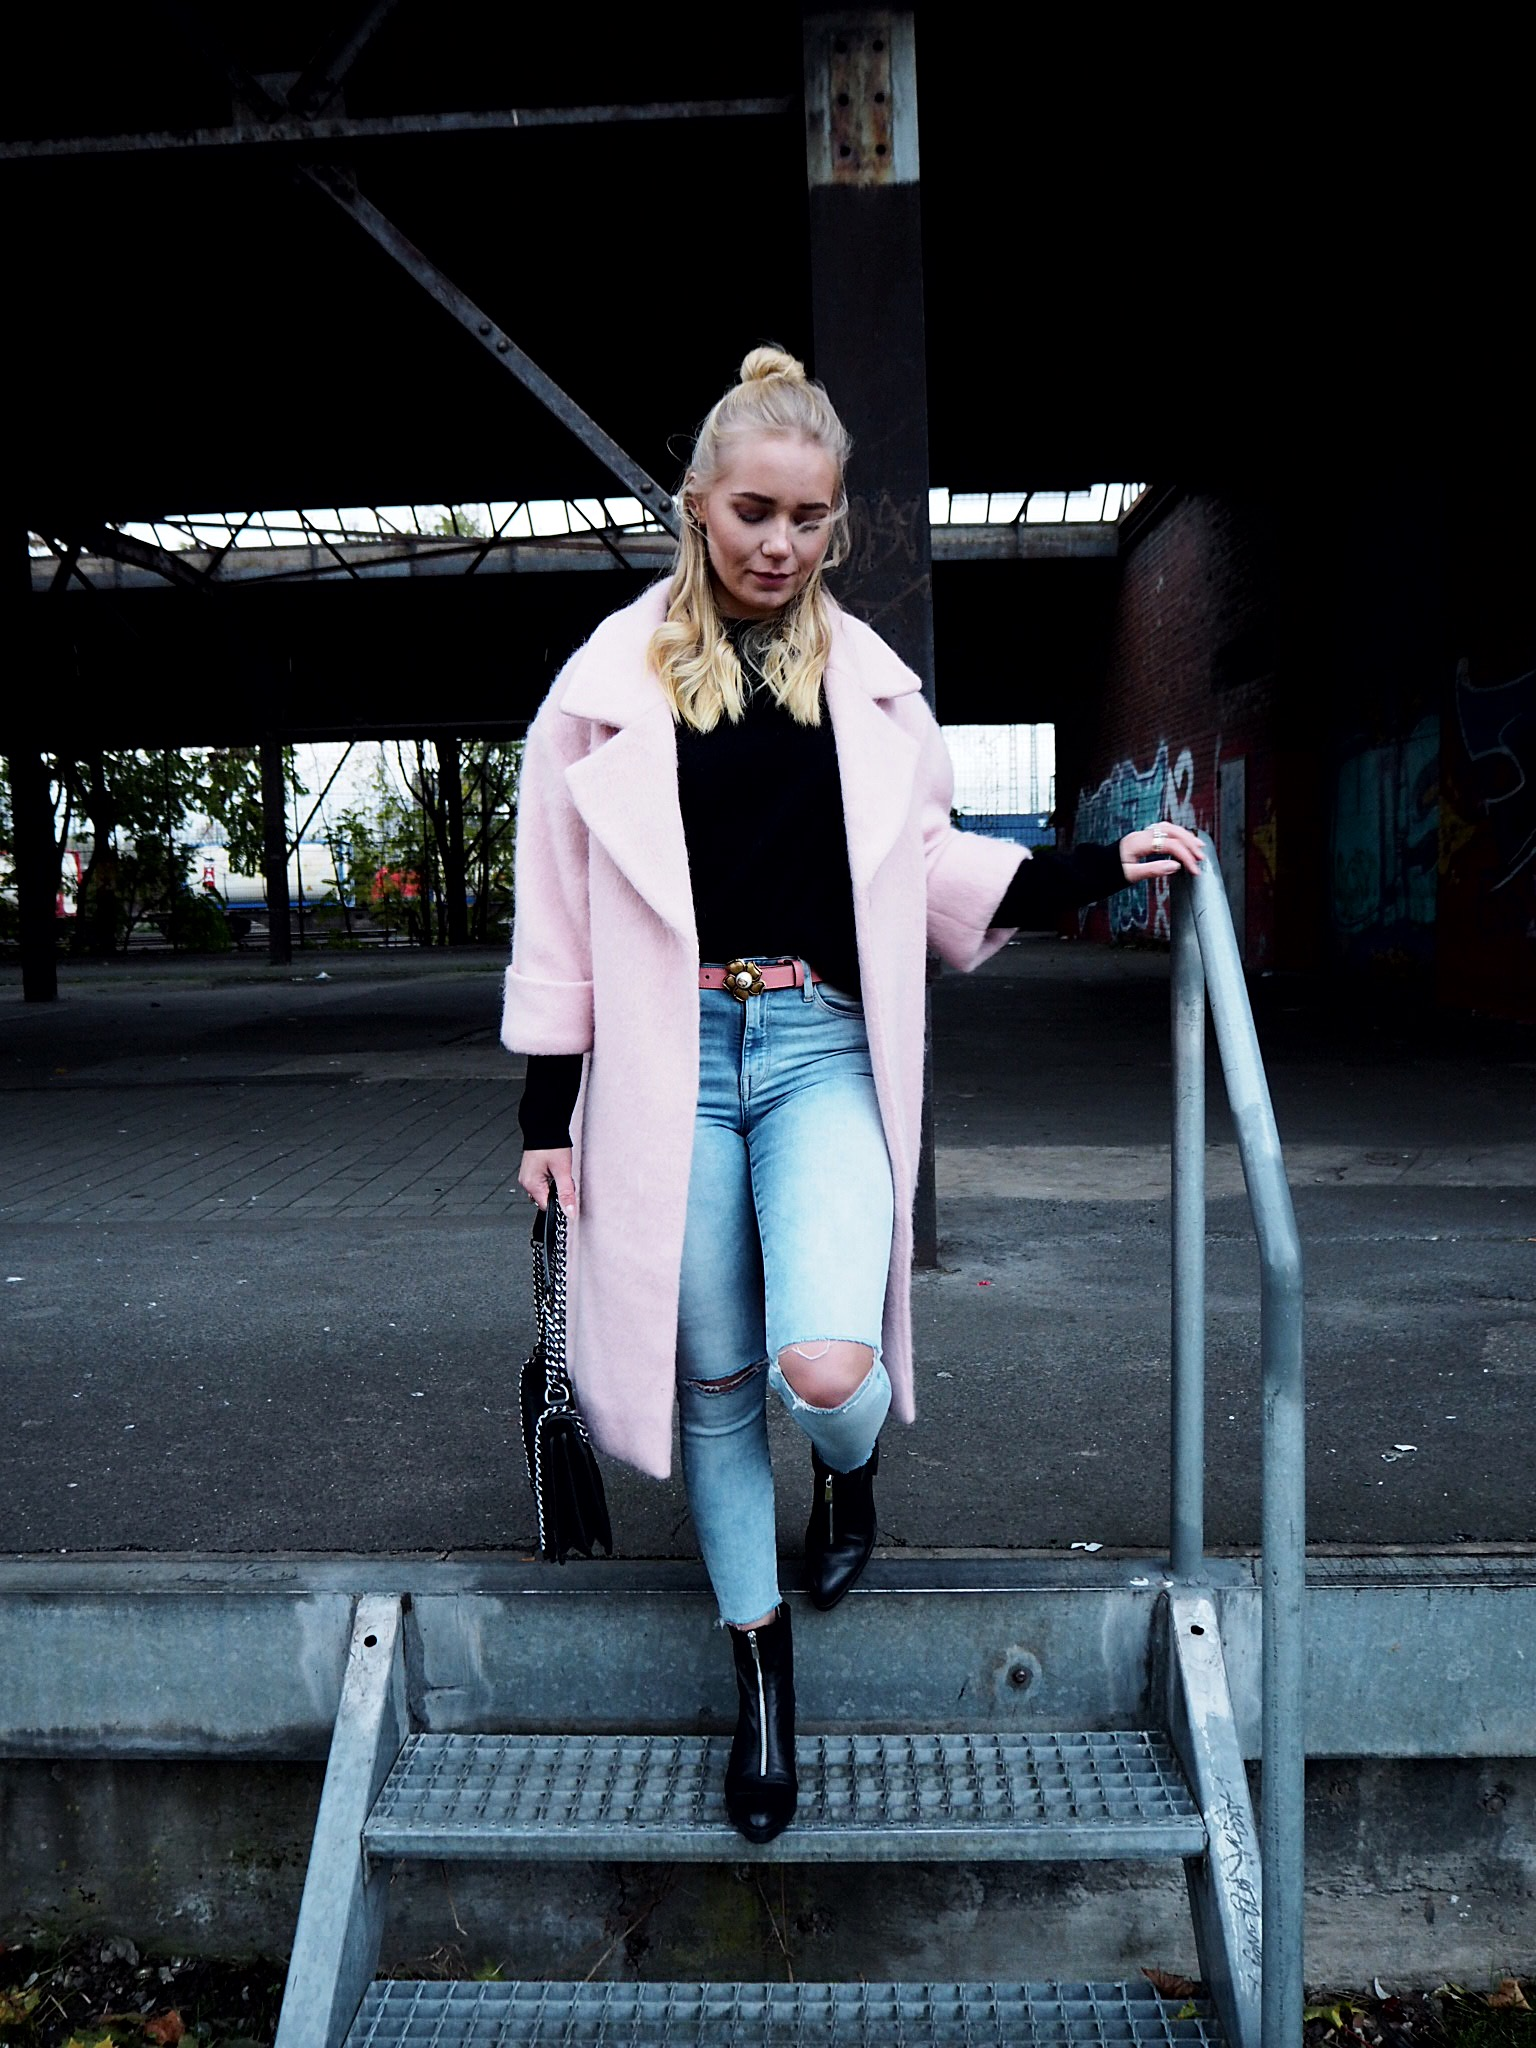 Outfit: Rosa Mantel zu Jeans